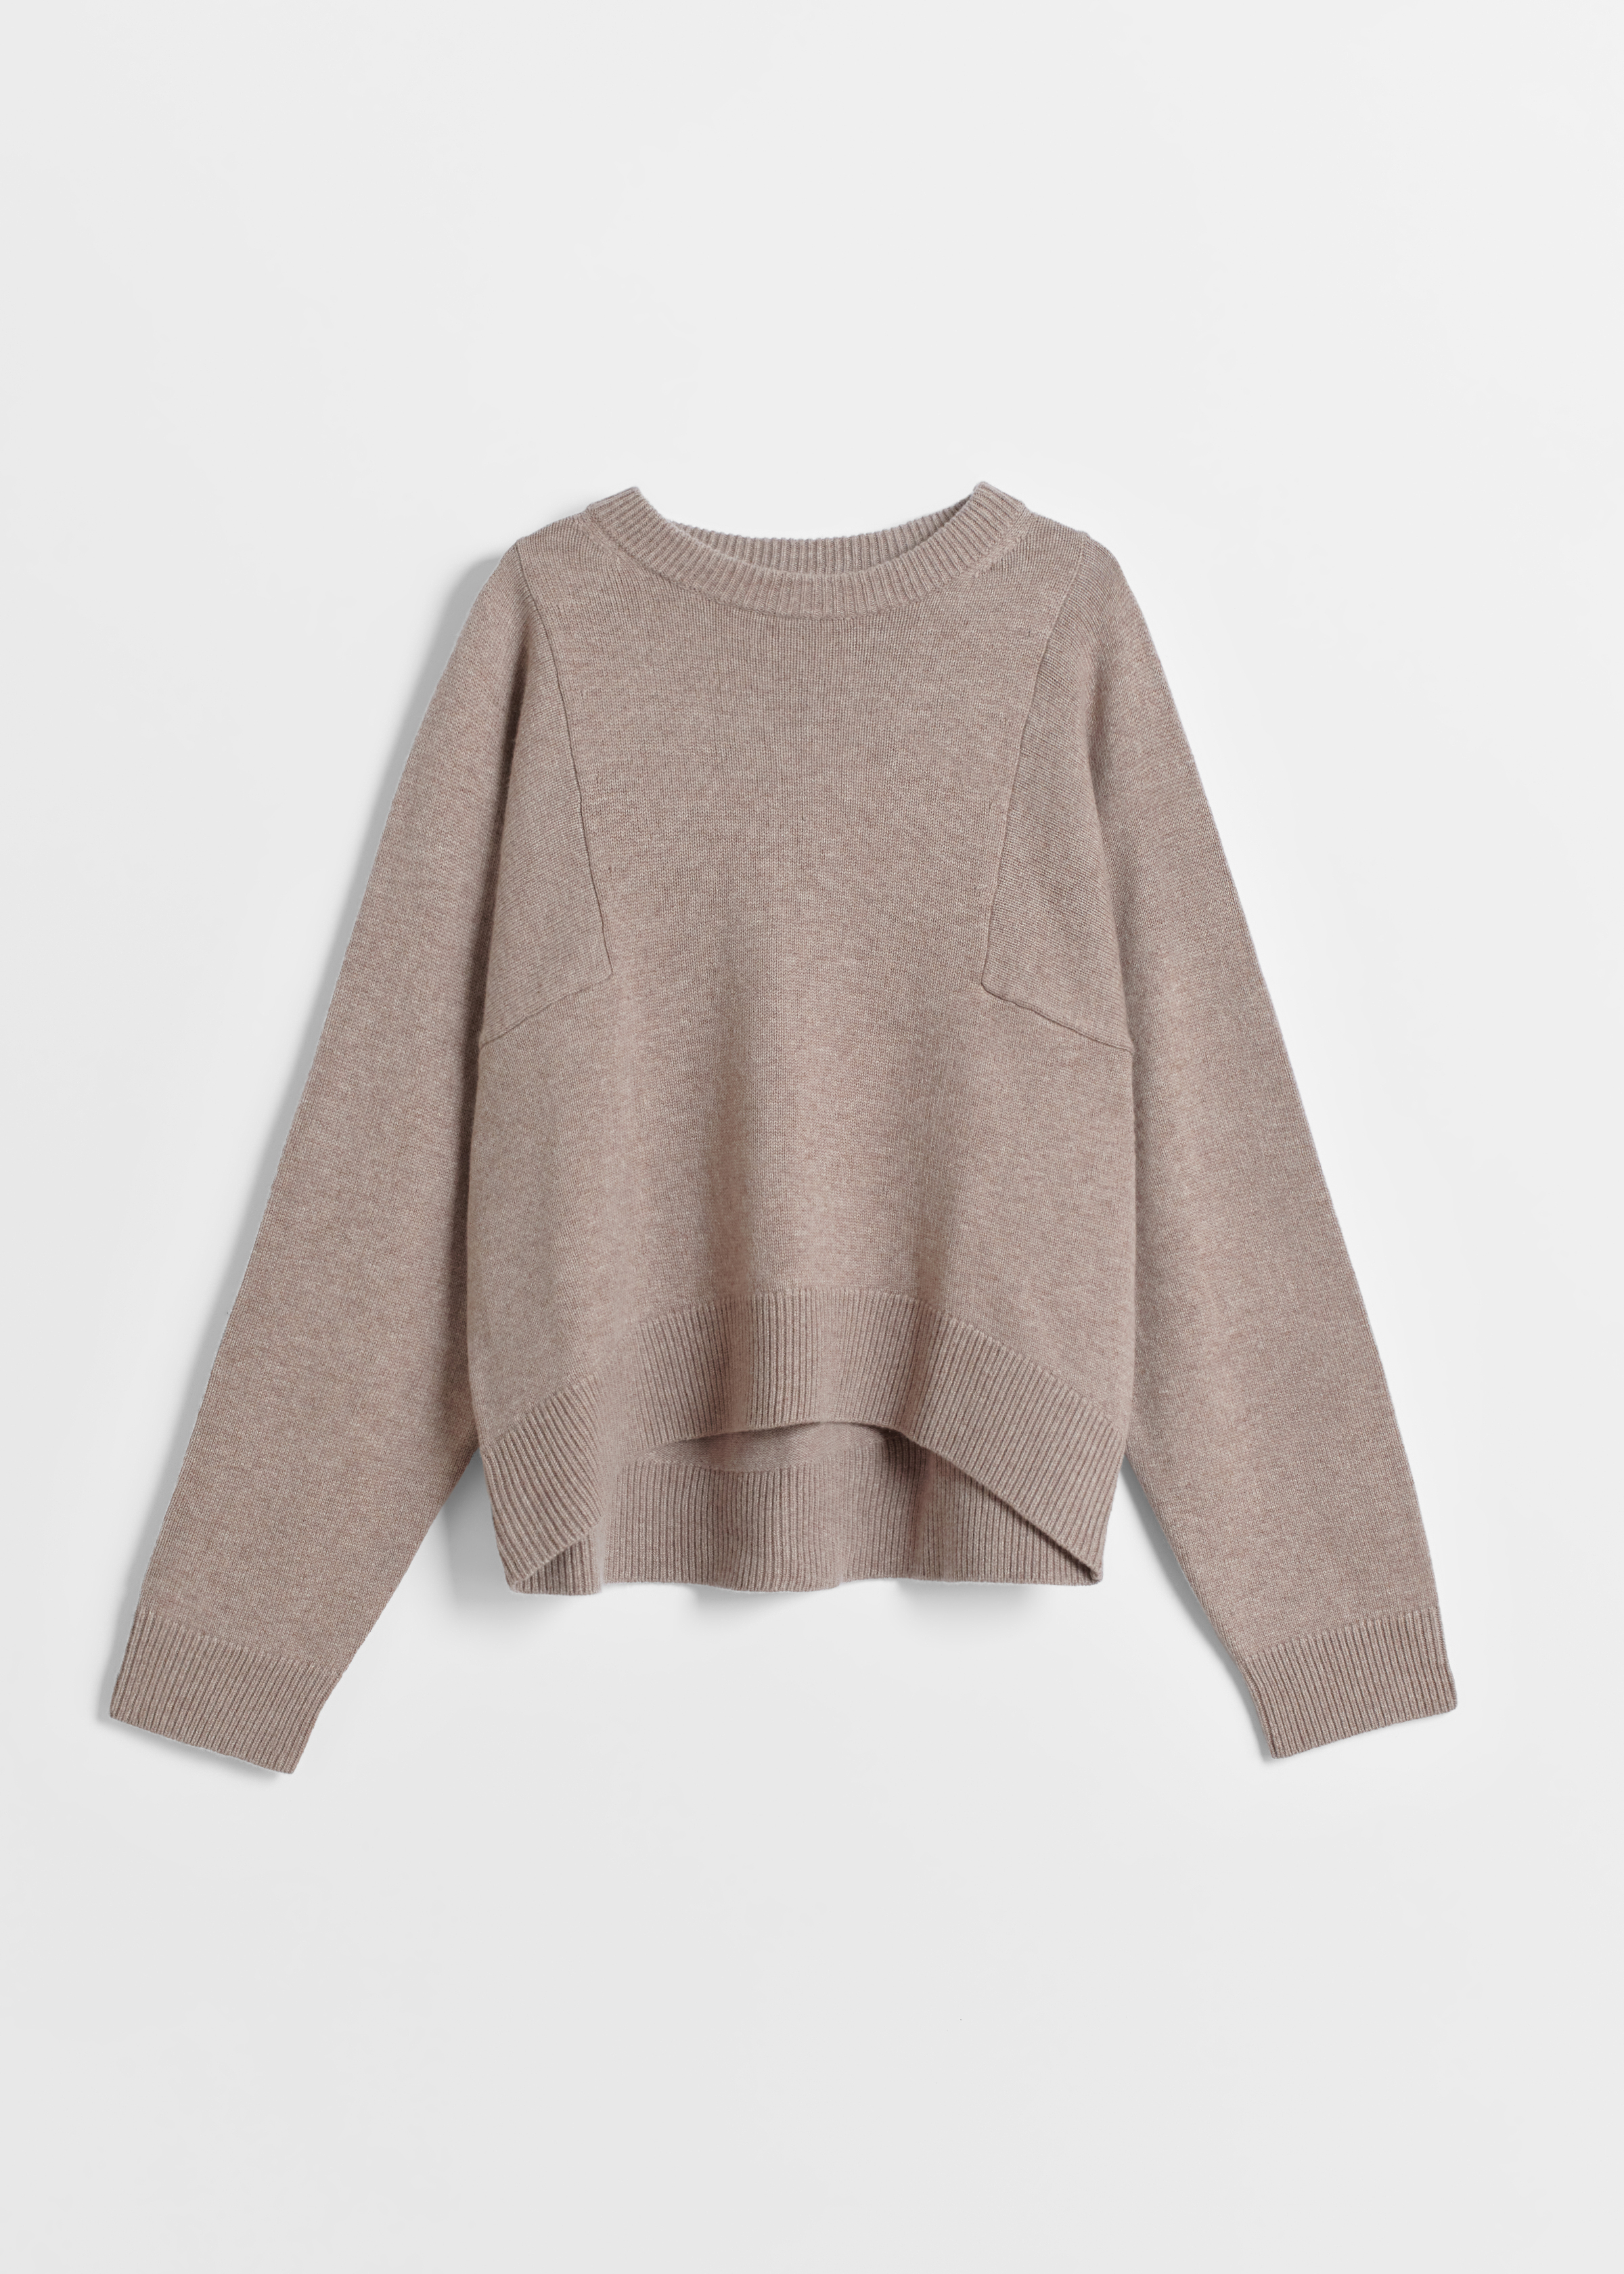 CO - Crew Neck Sweater in Wool Cashmere - Taupe